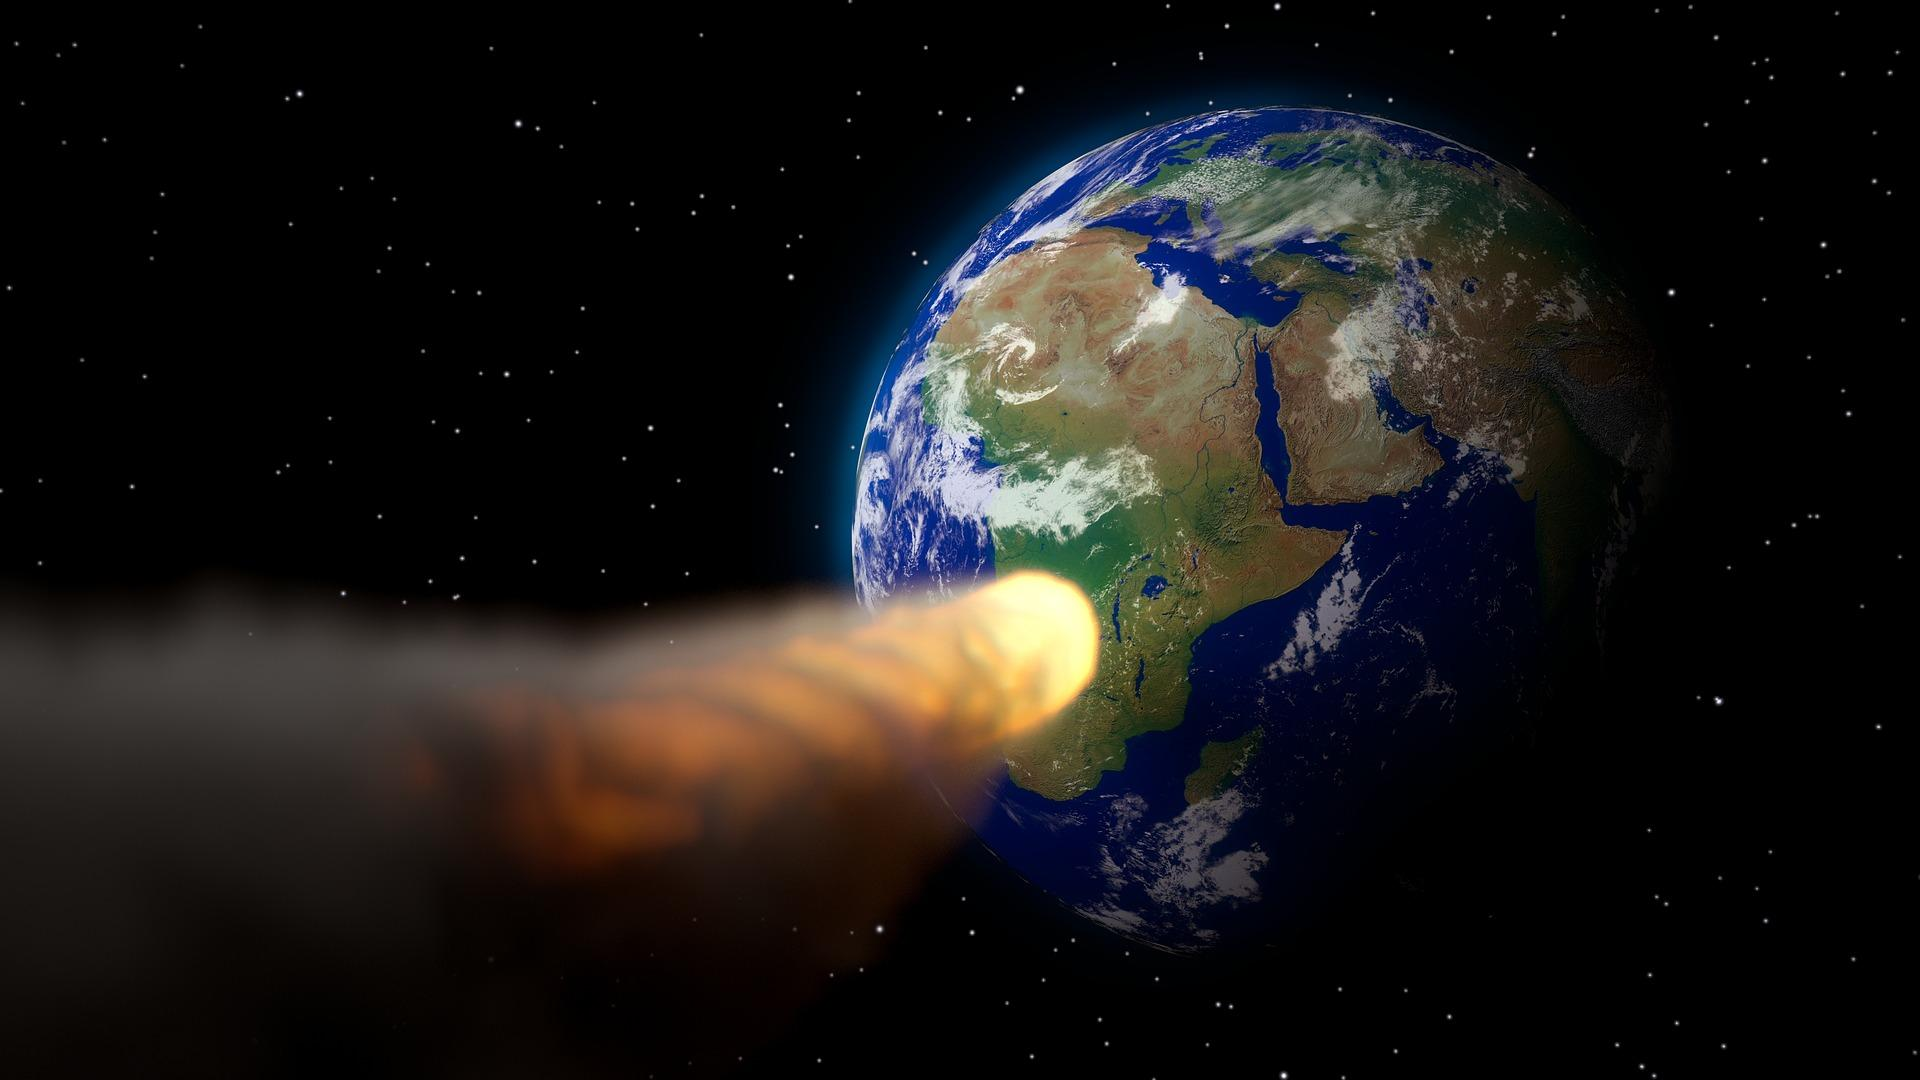 Asteroid Heading for Earth in NASA Tabletop Exercise